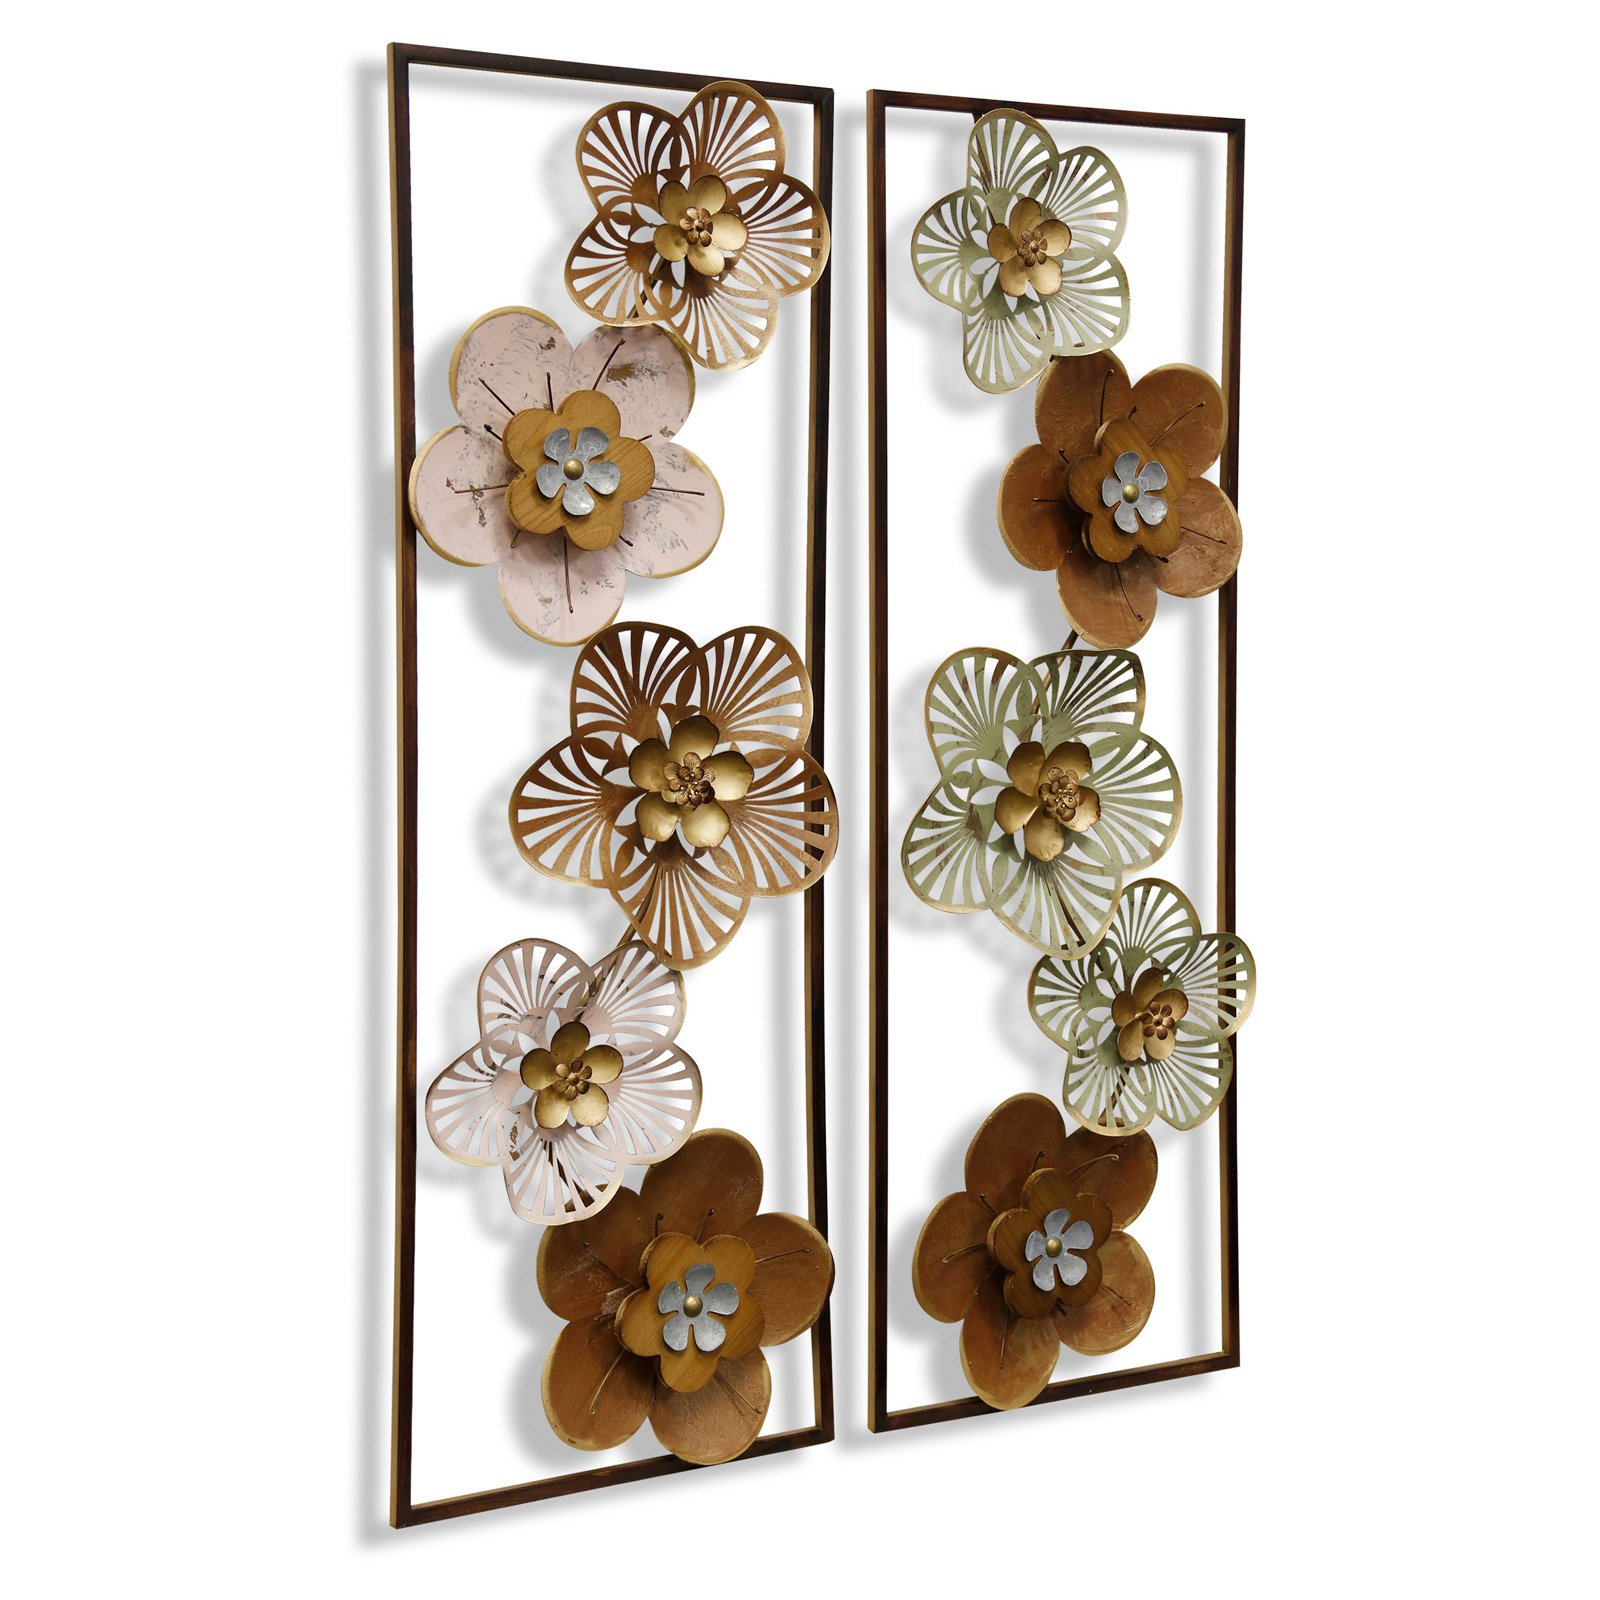 Stylecraft Floral Design Wall Sculptures – Set Of 2 Pertaining To 2 Piece Panel Wood Wall Decor Sets (set Of 2) (View 14 of 30)